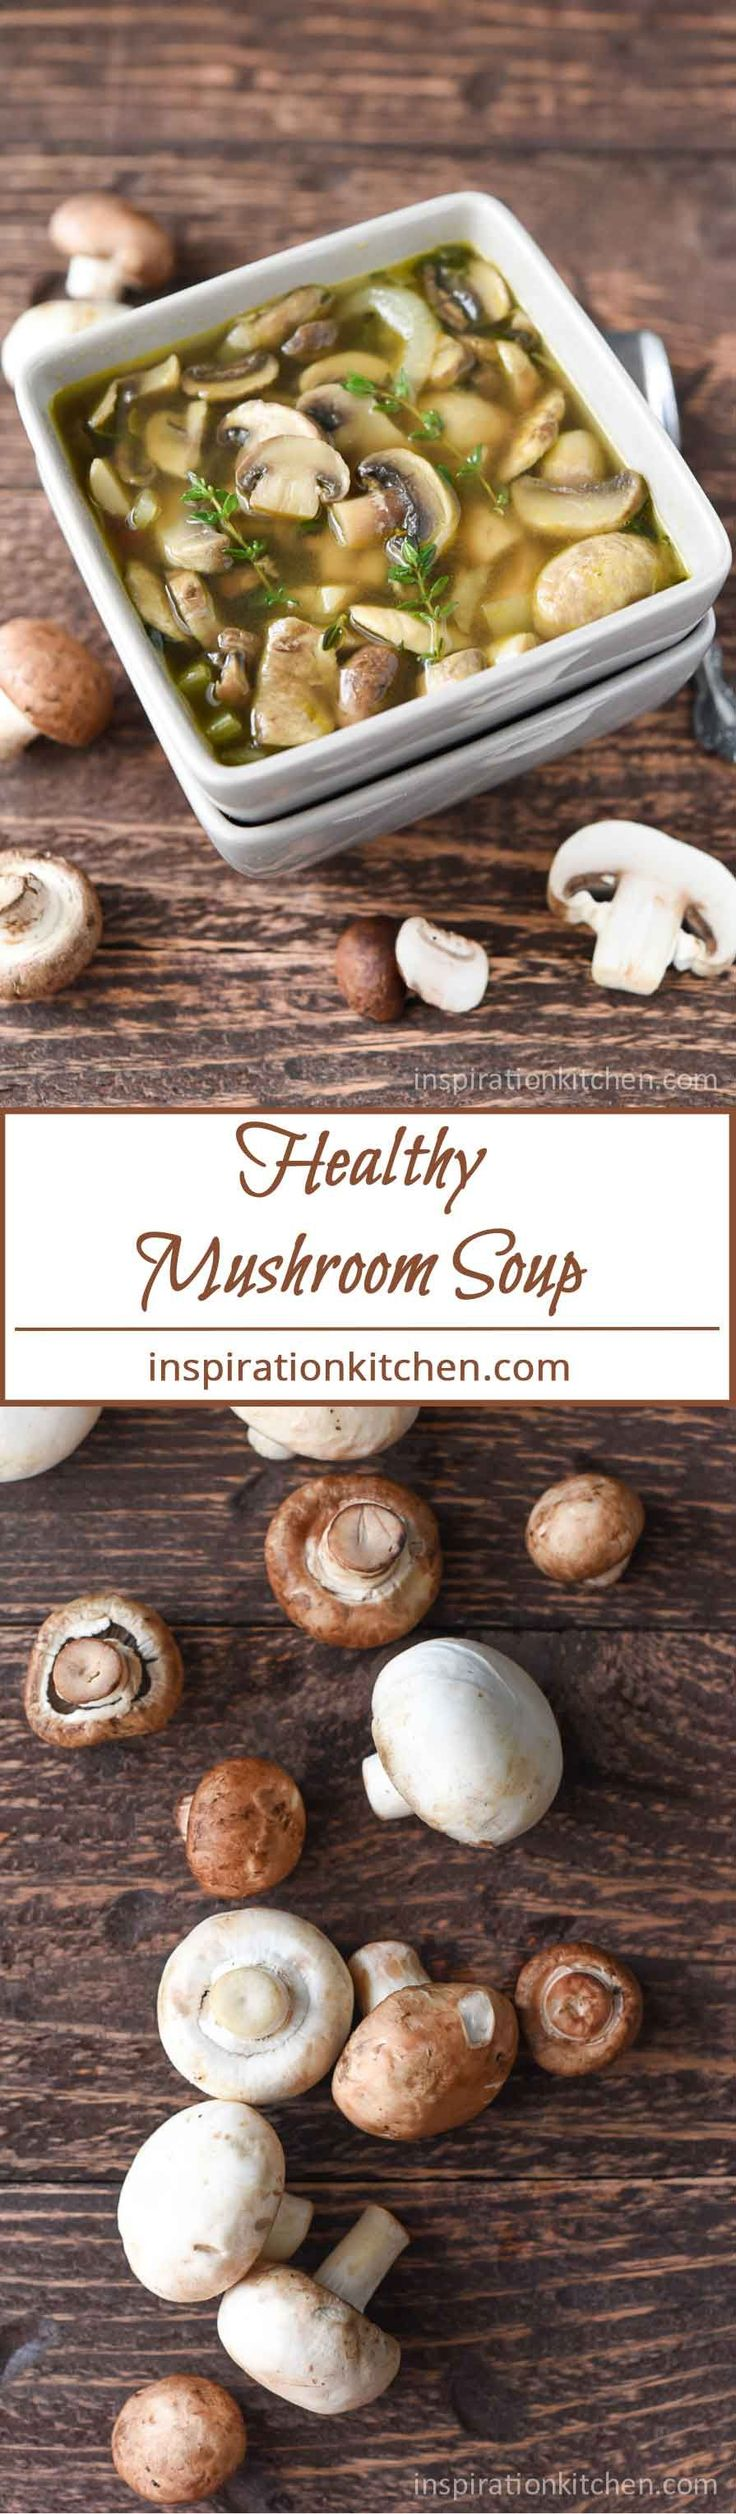 Healthy Mushroom Soup Recipe - great for those with colds or flu too...x